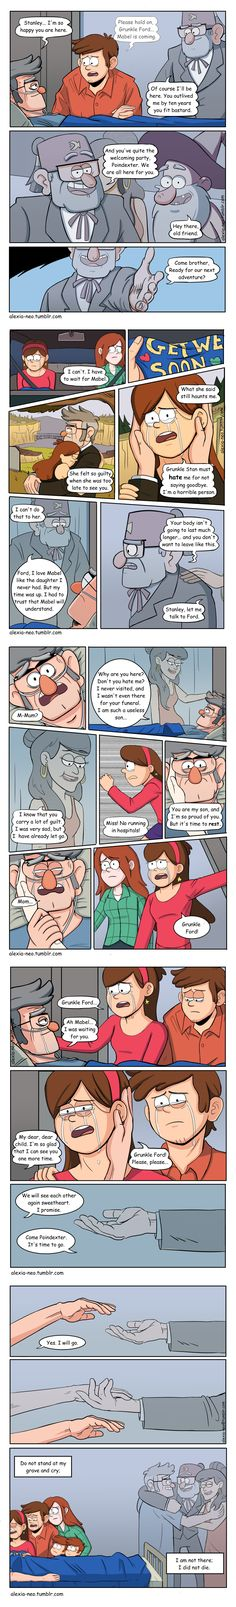 mabel and dipper fucking sex comics